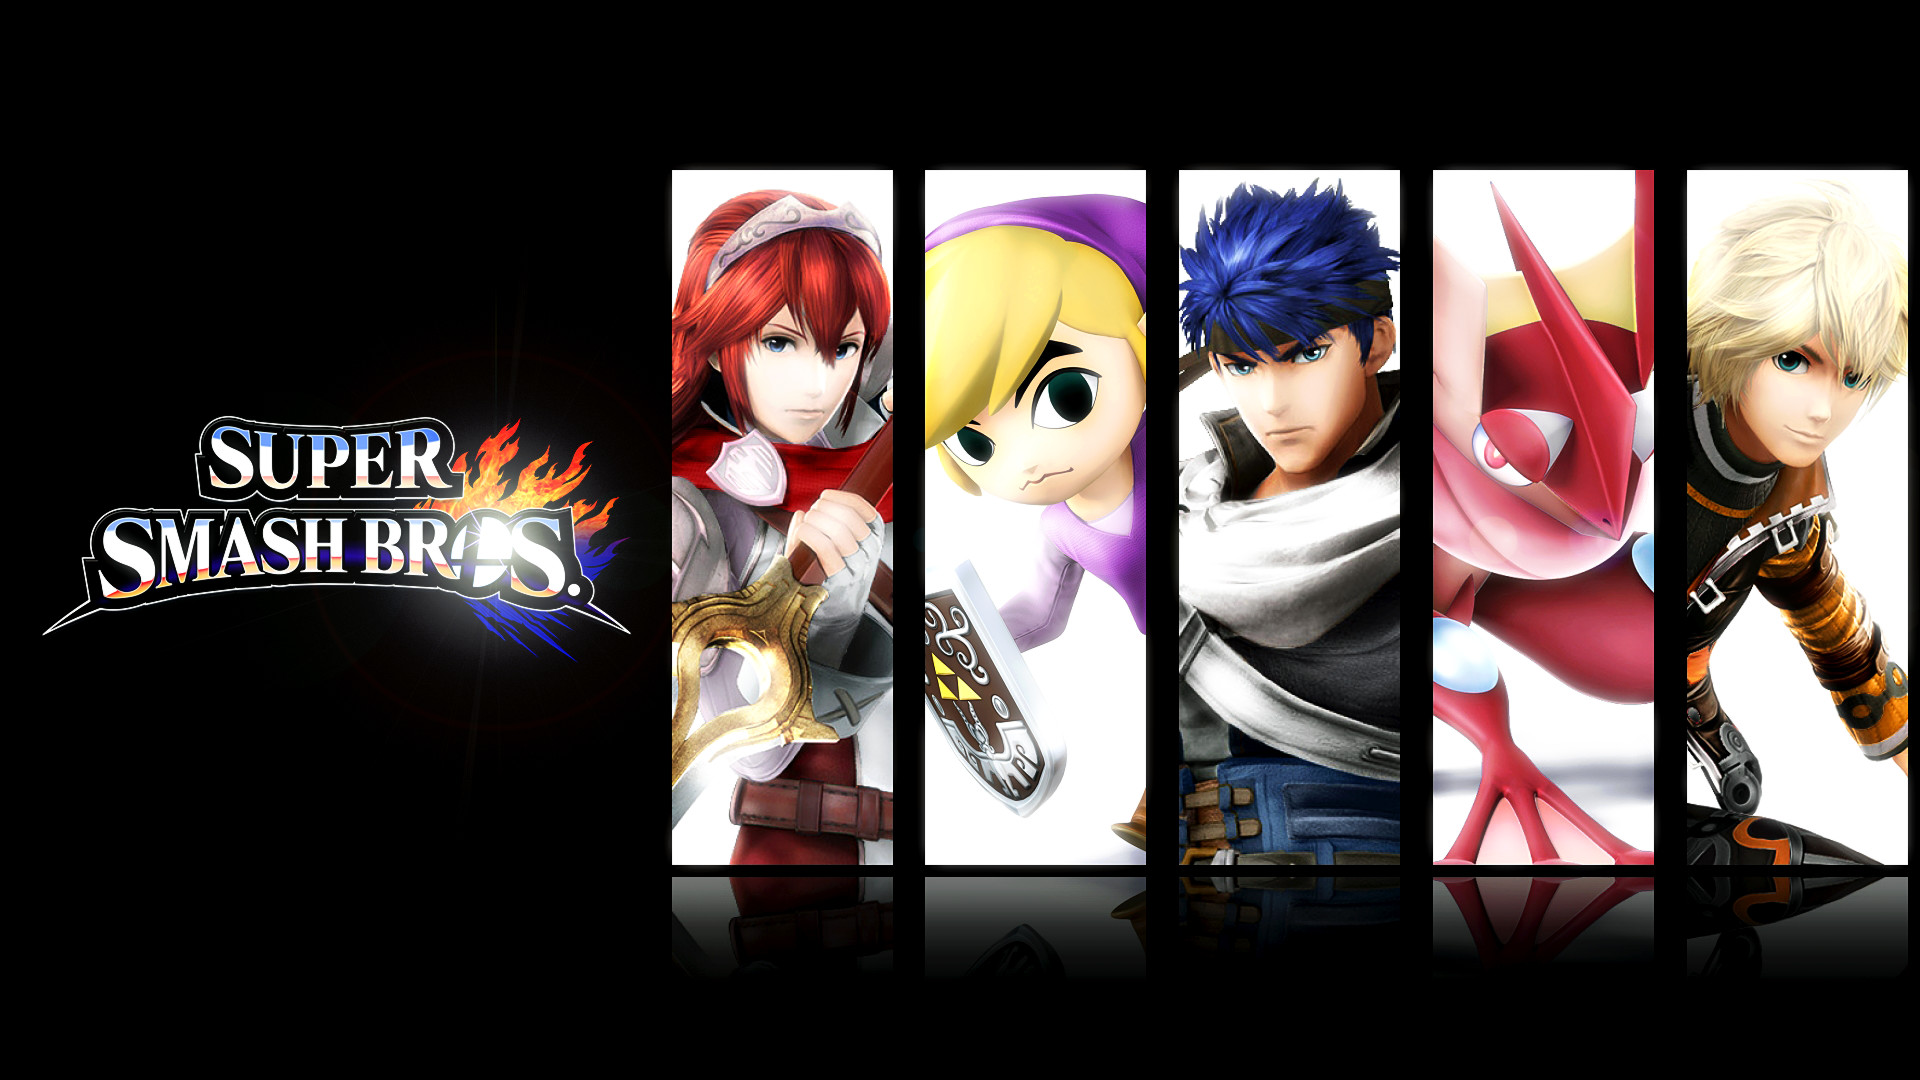 … Glench Super Smash Bros. 4 3DS and Wii U Mains Wallpaper by Glench